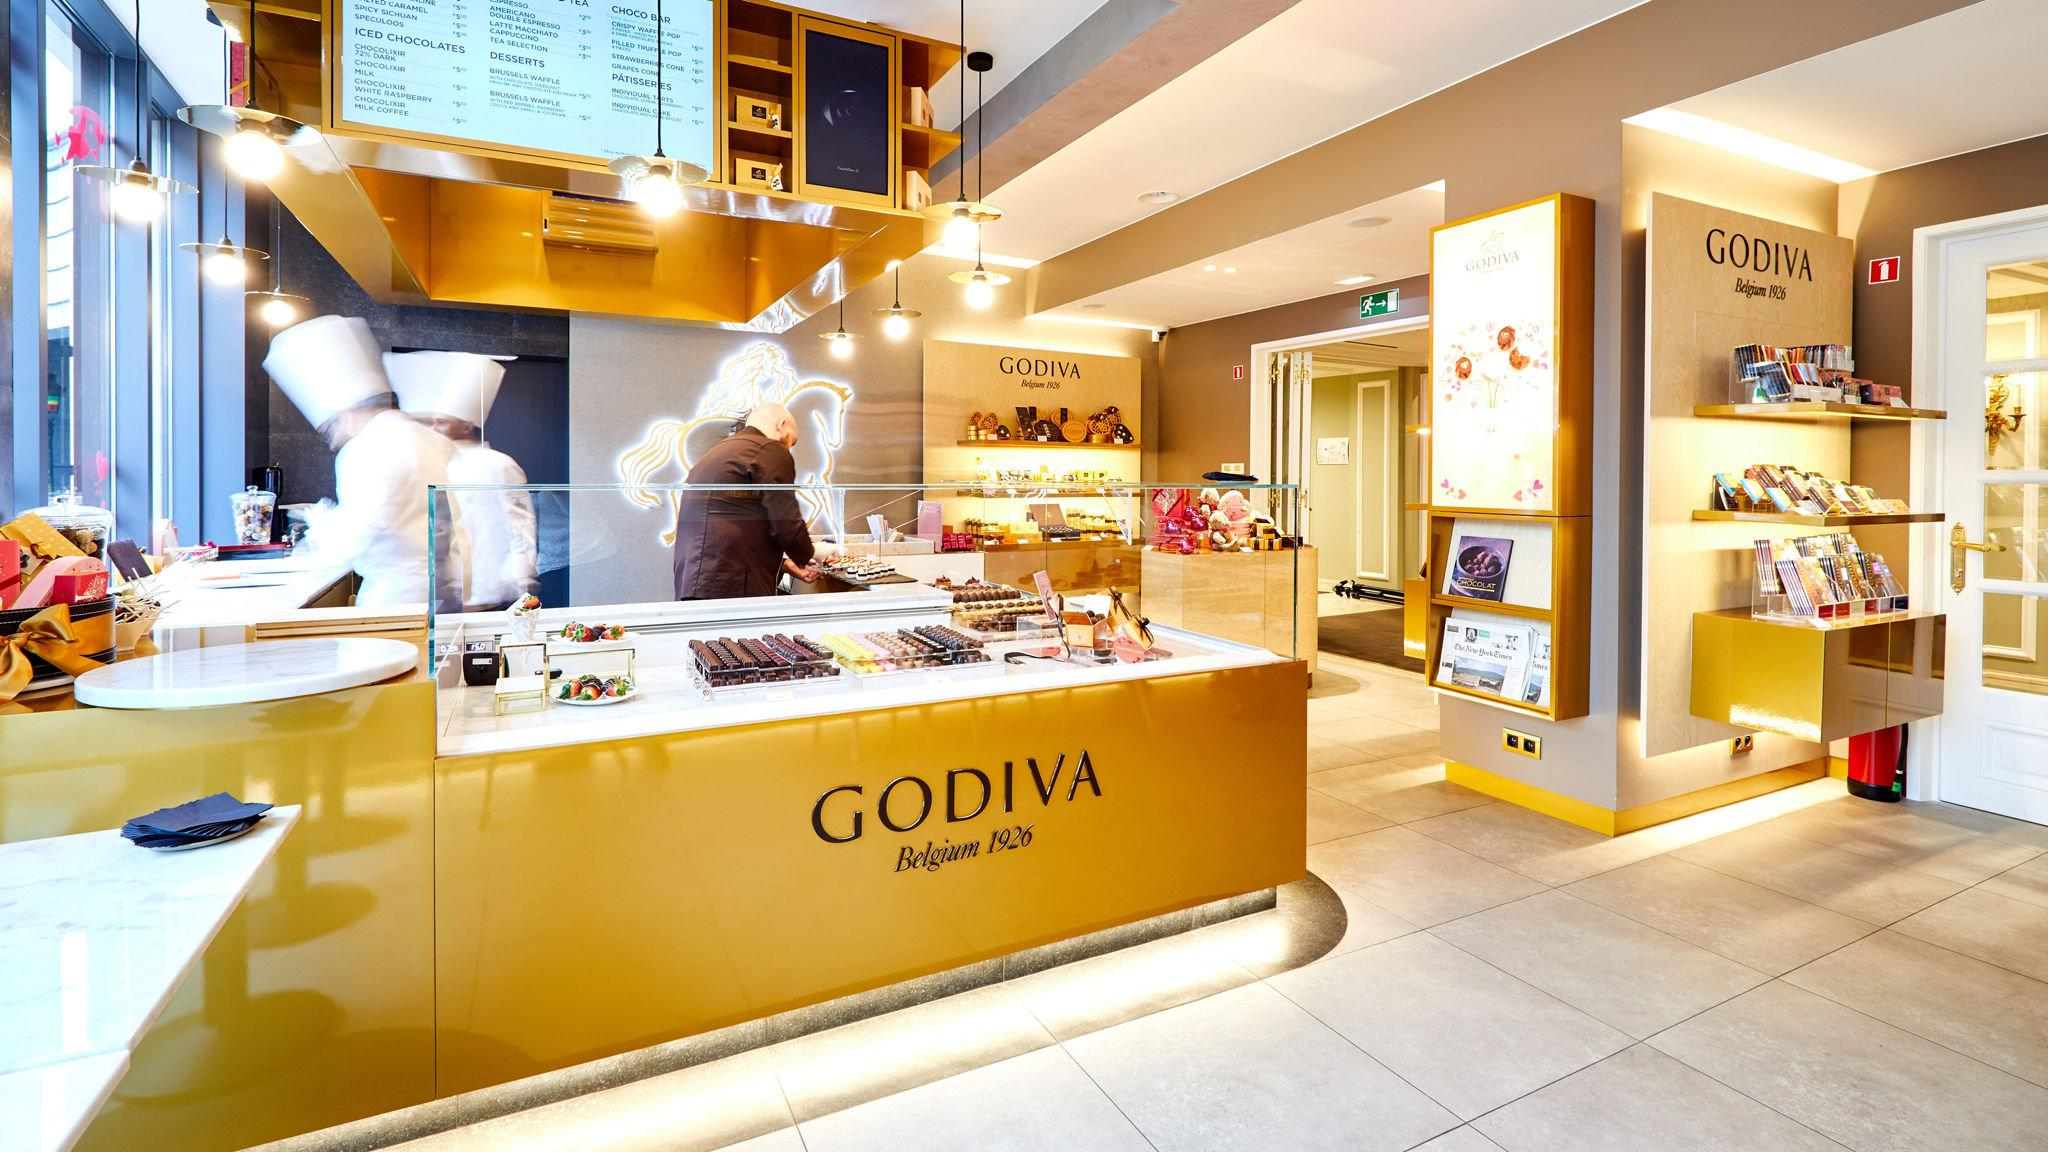 South Korea's MBK strikes $1bn Godiva chocolate deal